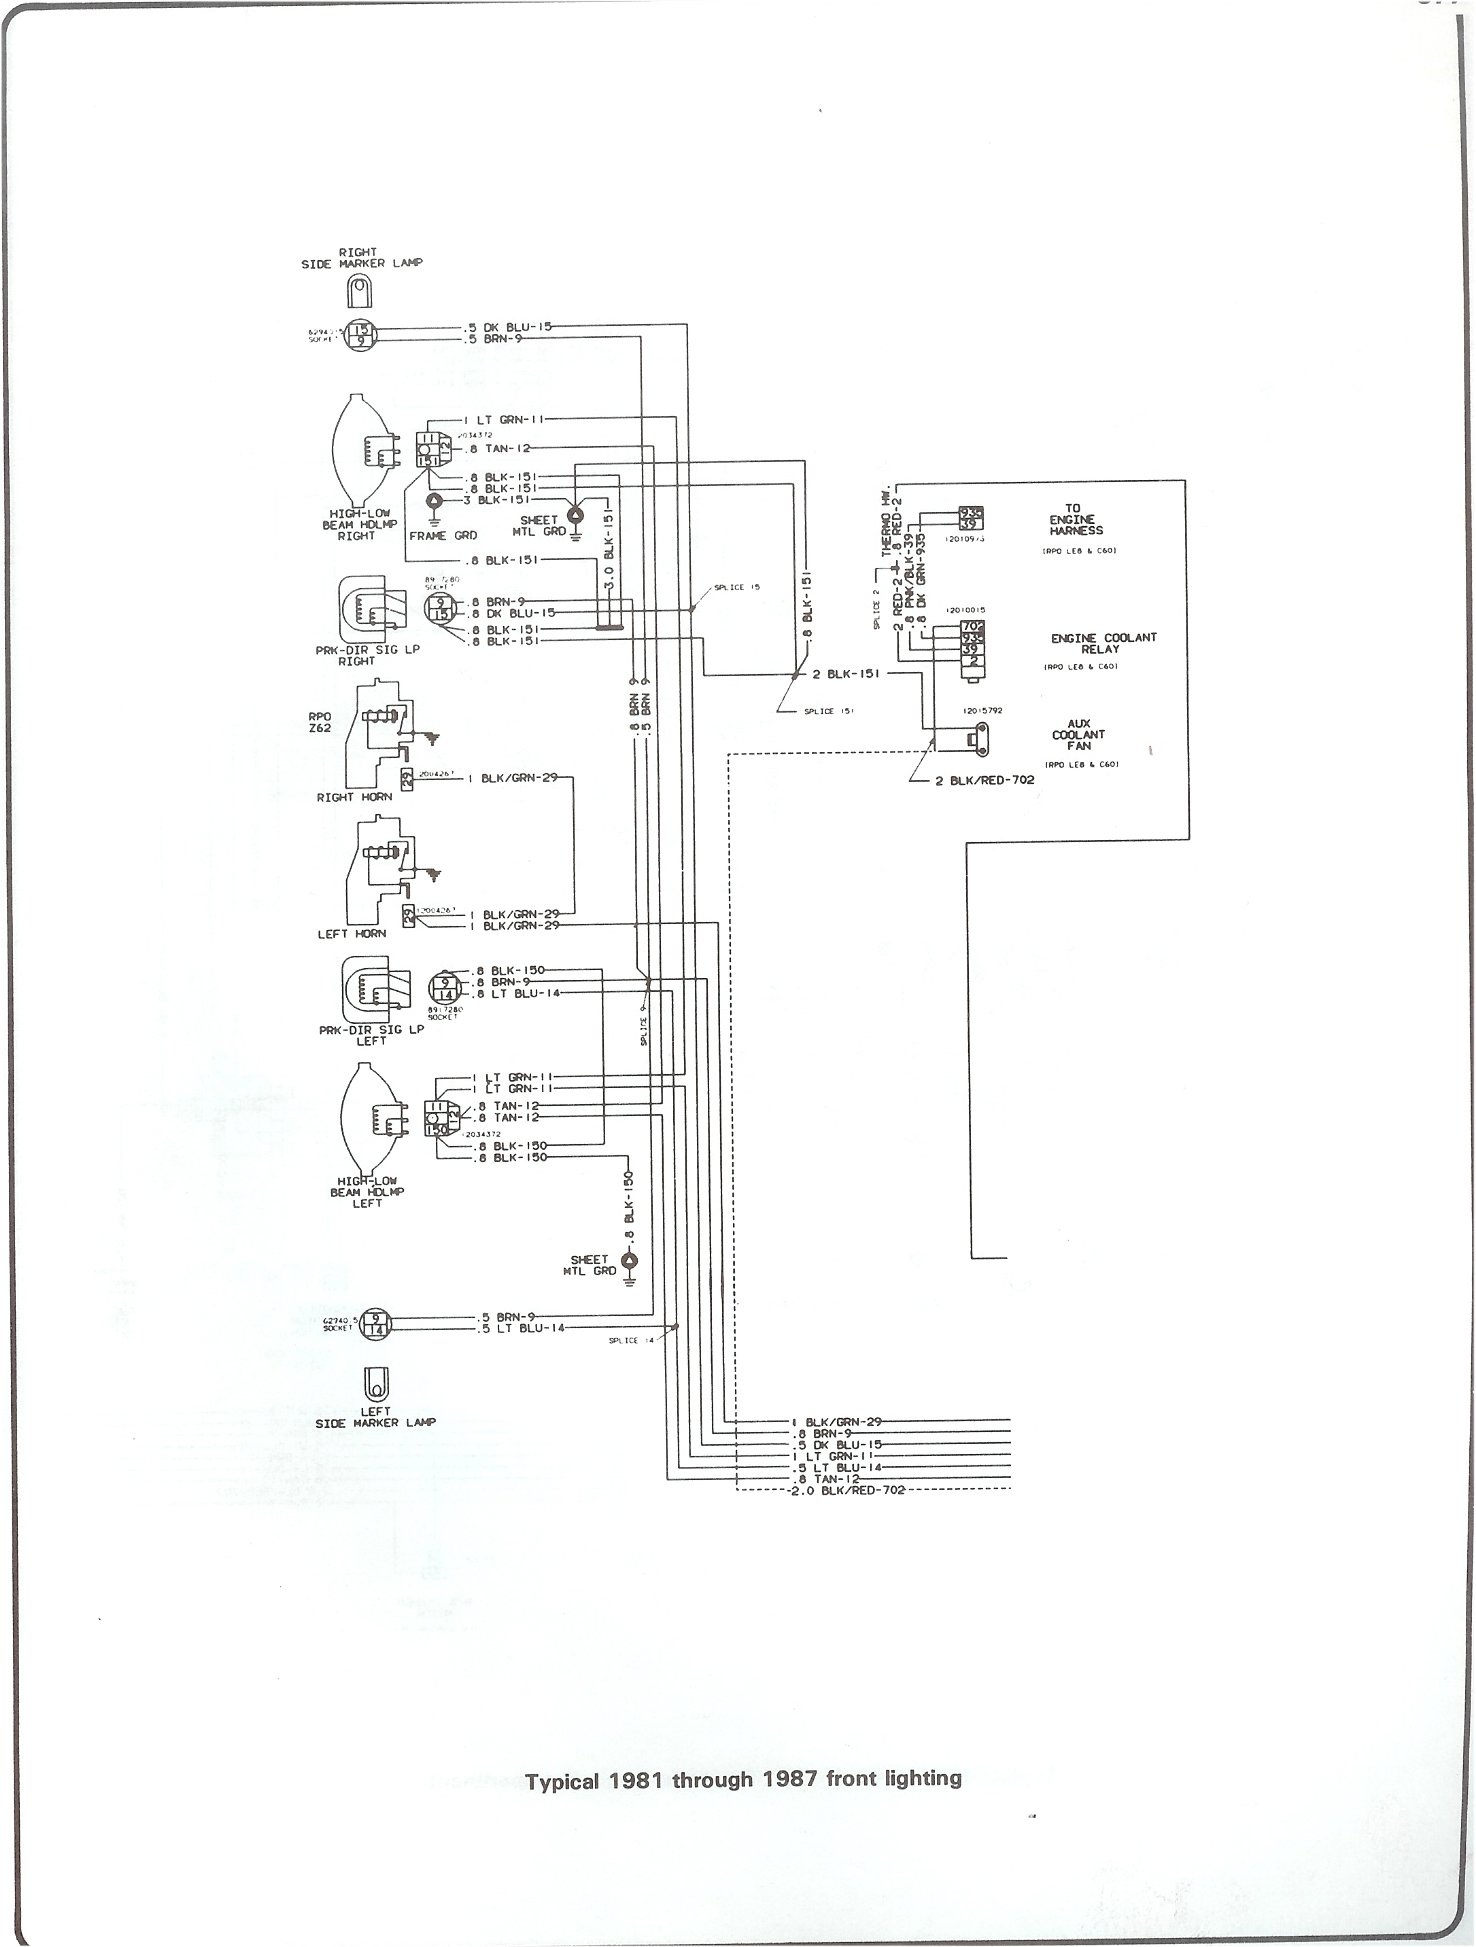 Light Switch Wiring Diagram 1981 C10 Great Installation Of Way Moreover 3 Complete 73 87 Diagrams Rh Forum 87chevytrucks Com Leviton Outlet